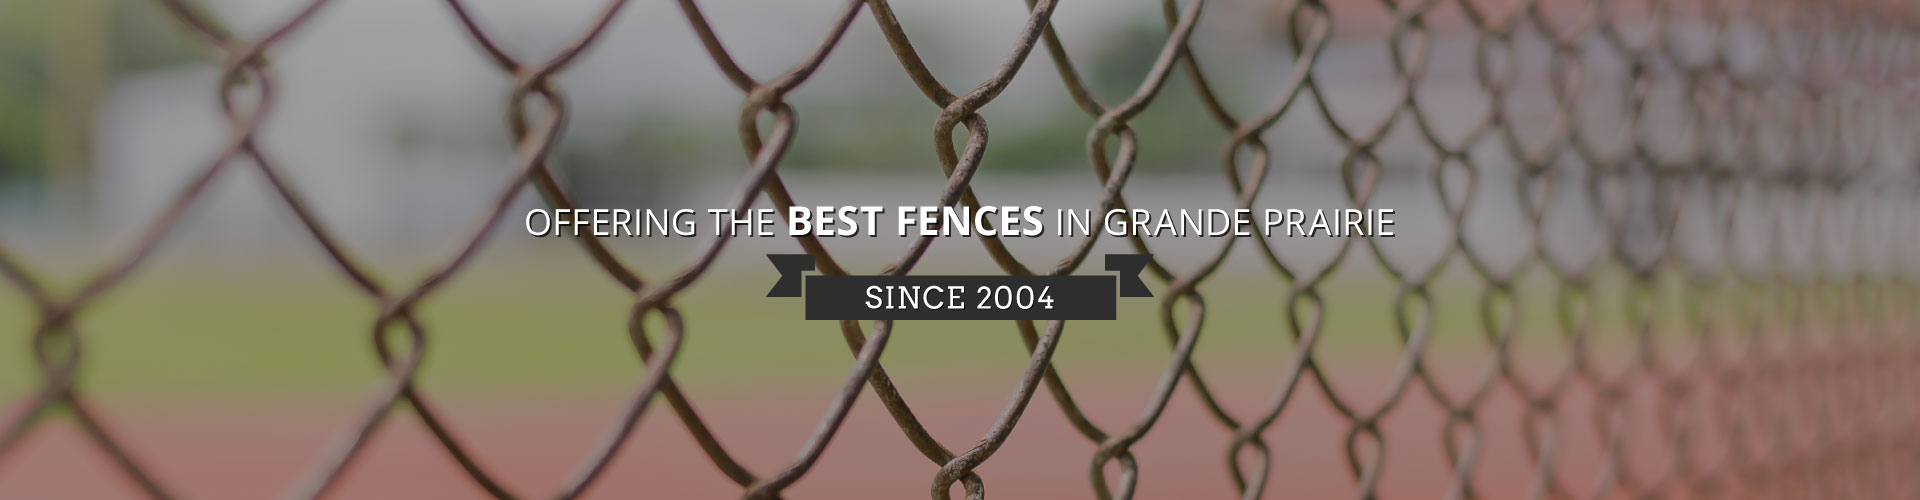 Offering the Best Fences in Grande Prairie Since 2004 | Fences Grande Prairie